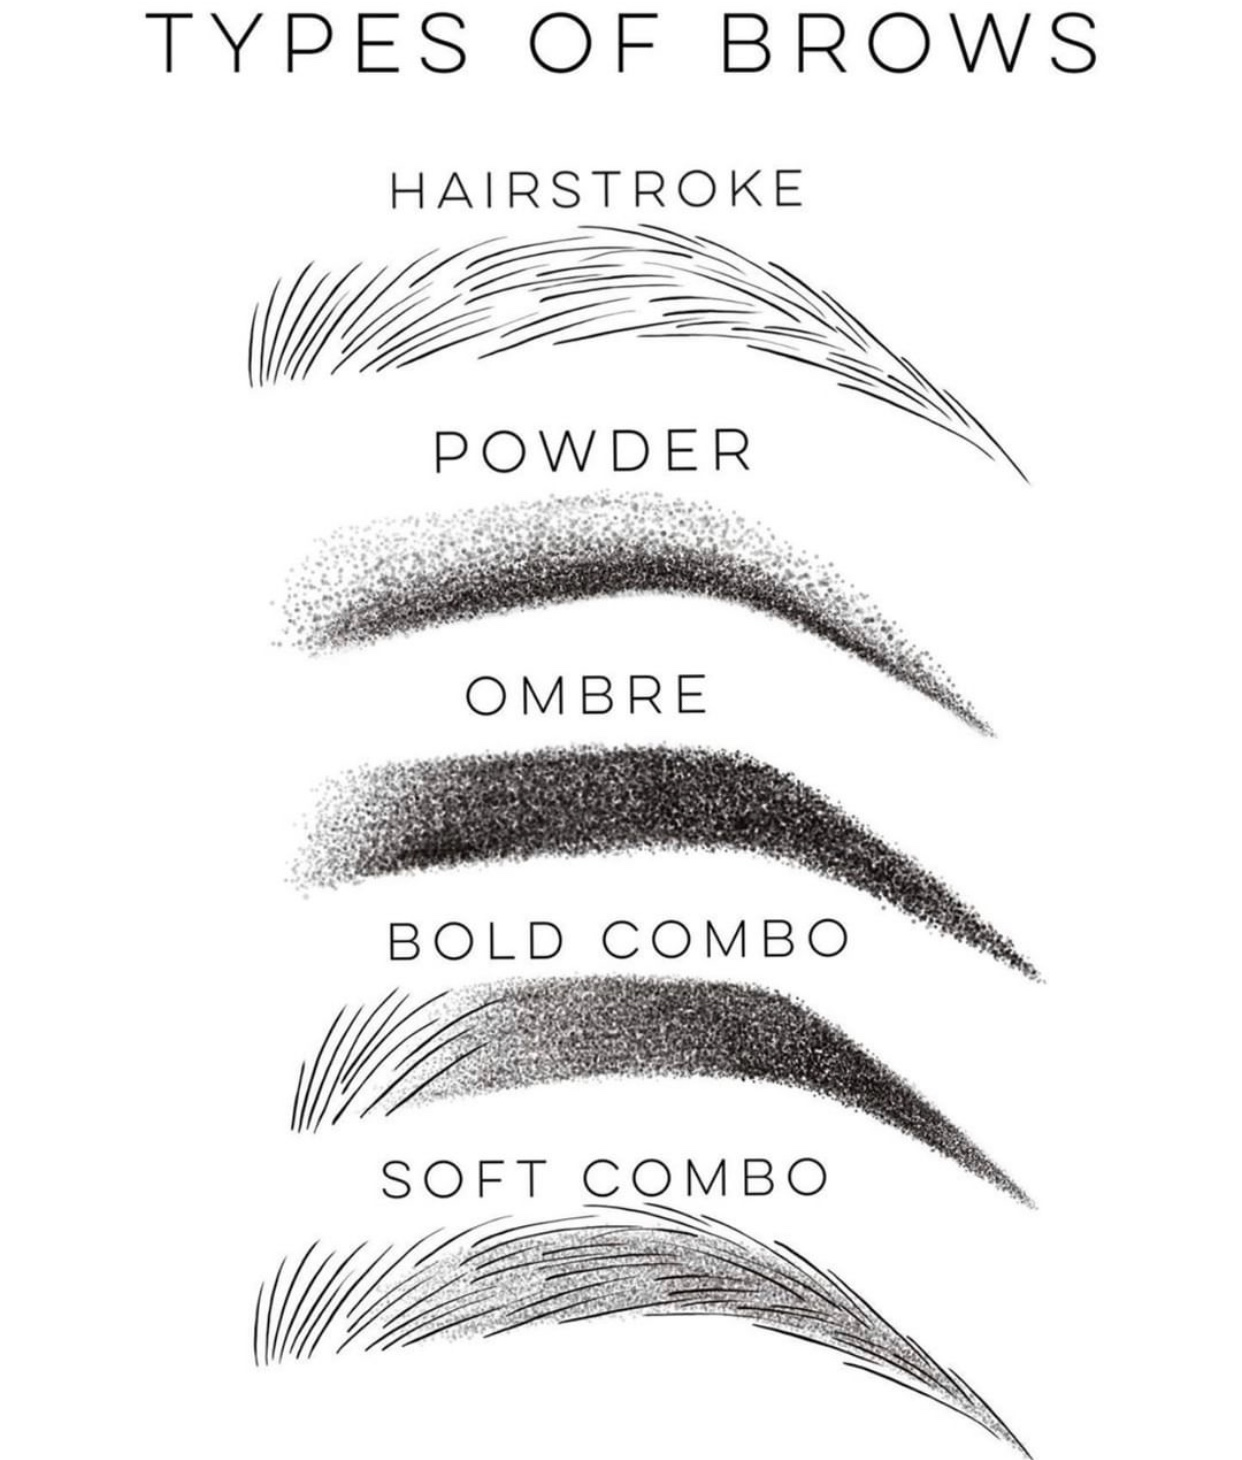 Examples of different types of microblading techniques